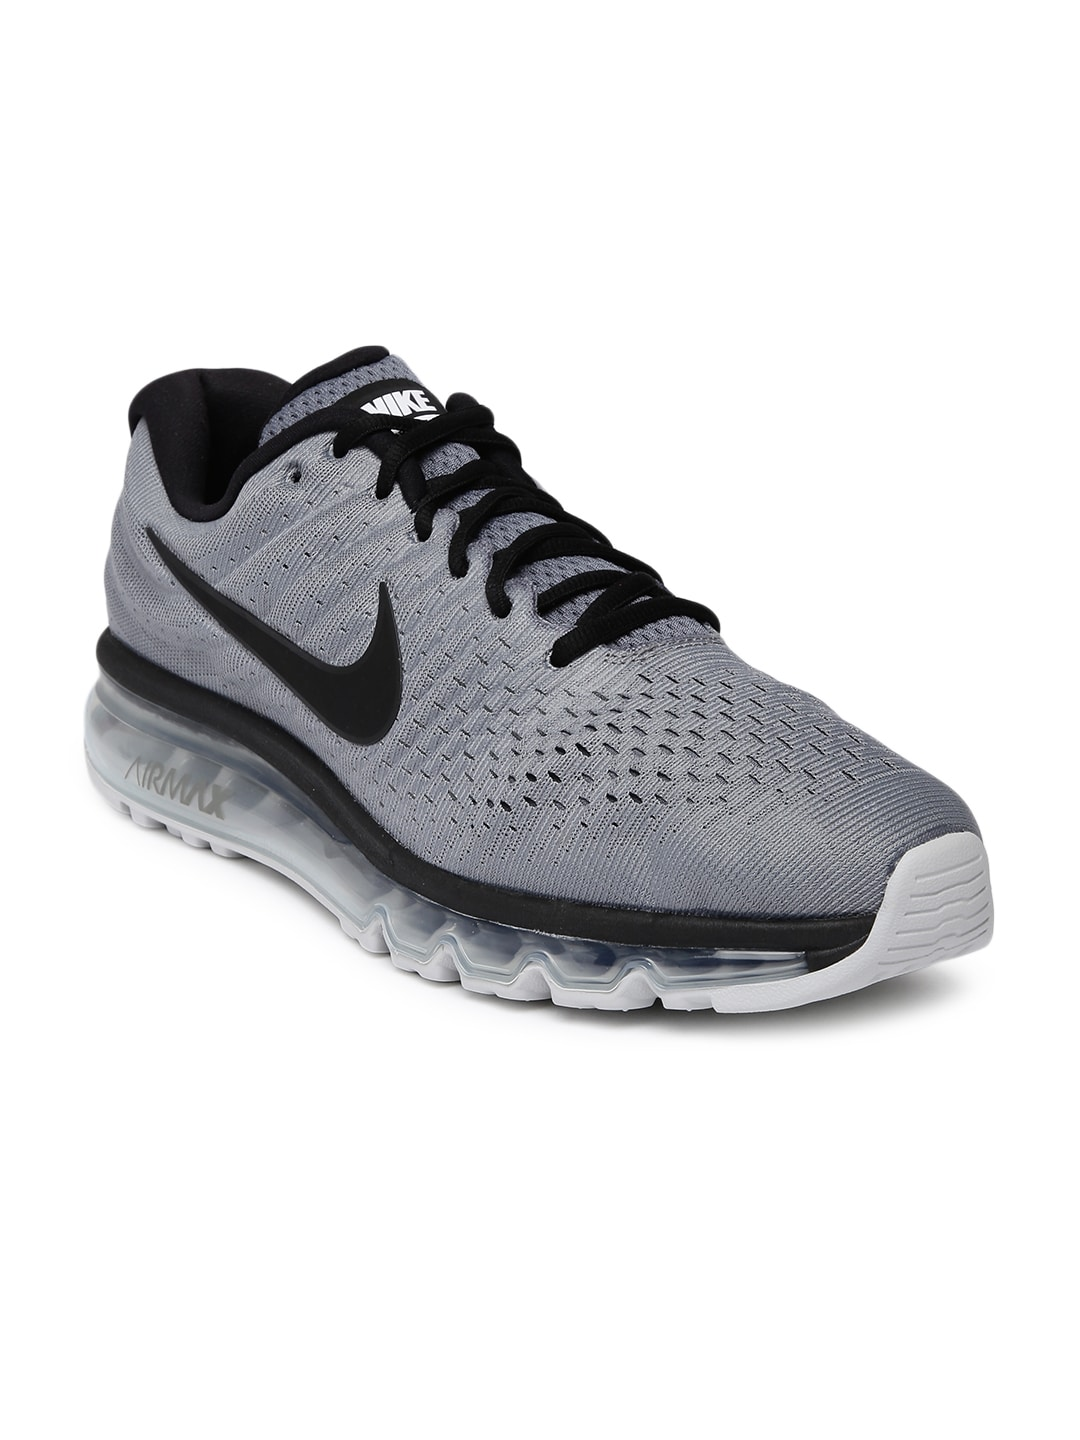 new product 47175 b97b0 Nike Air Max - Buy Nike Air Max Shoes, Bags, Sneakers in India